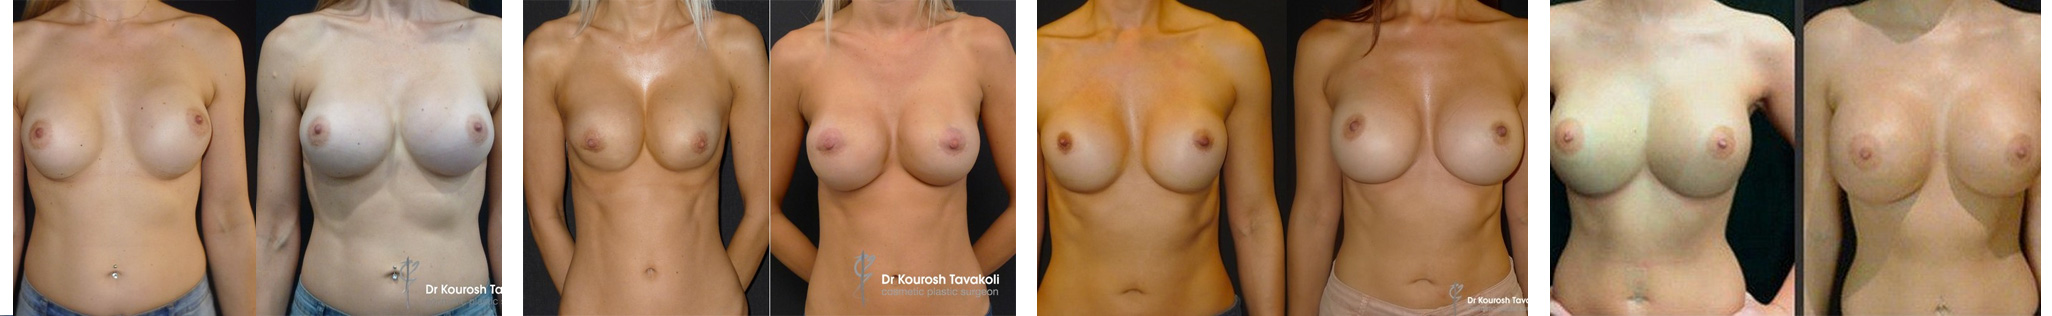 Breast revision surgery before and after gallery